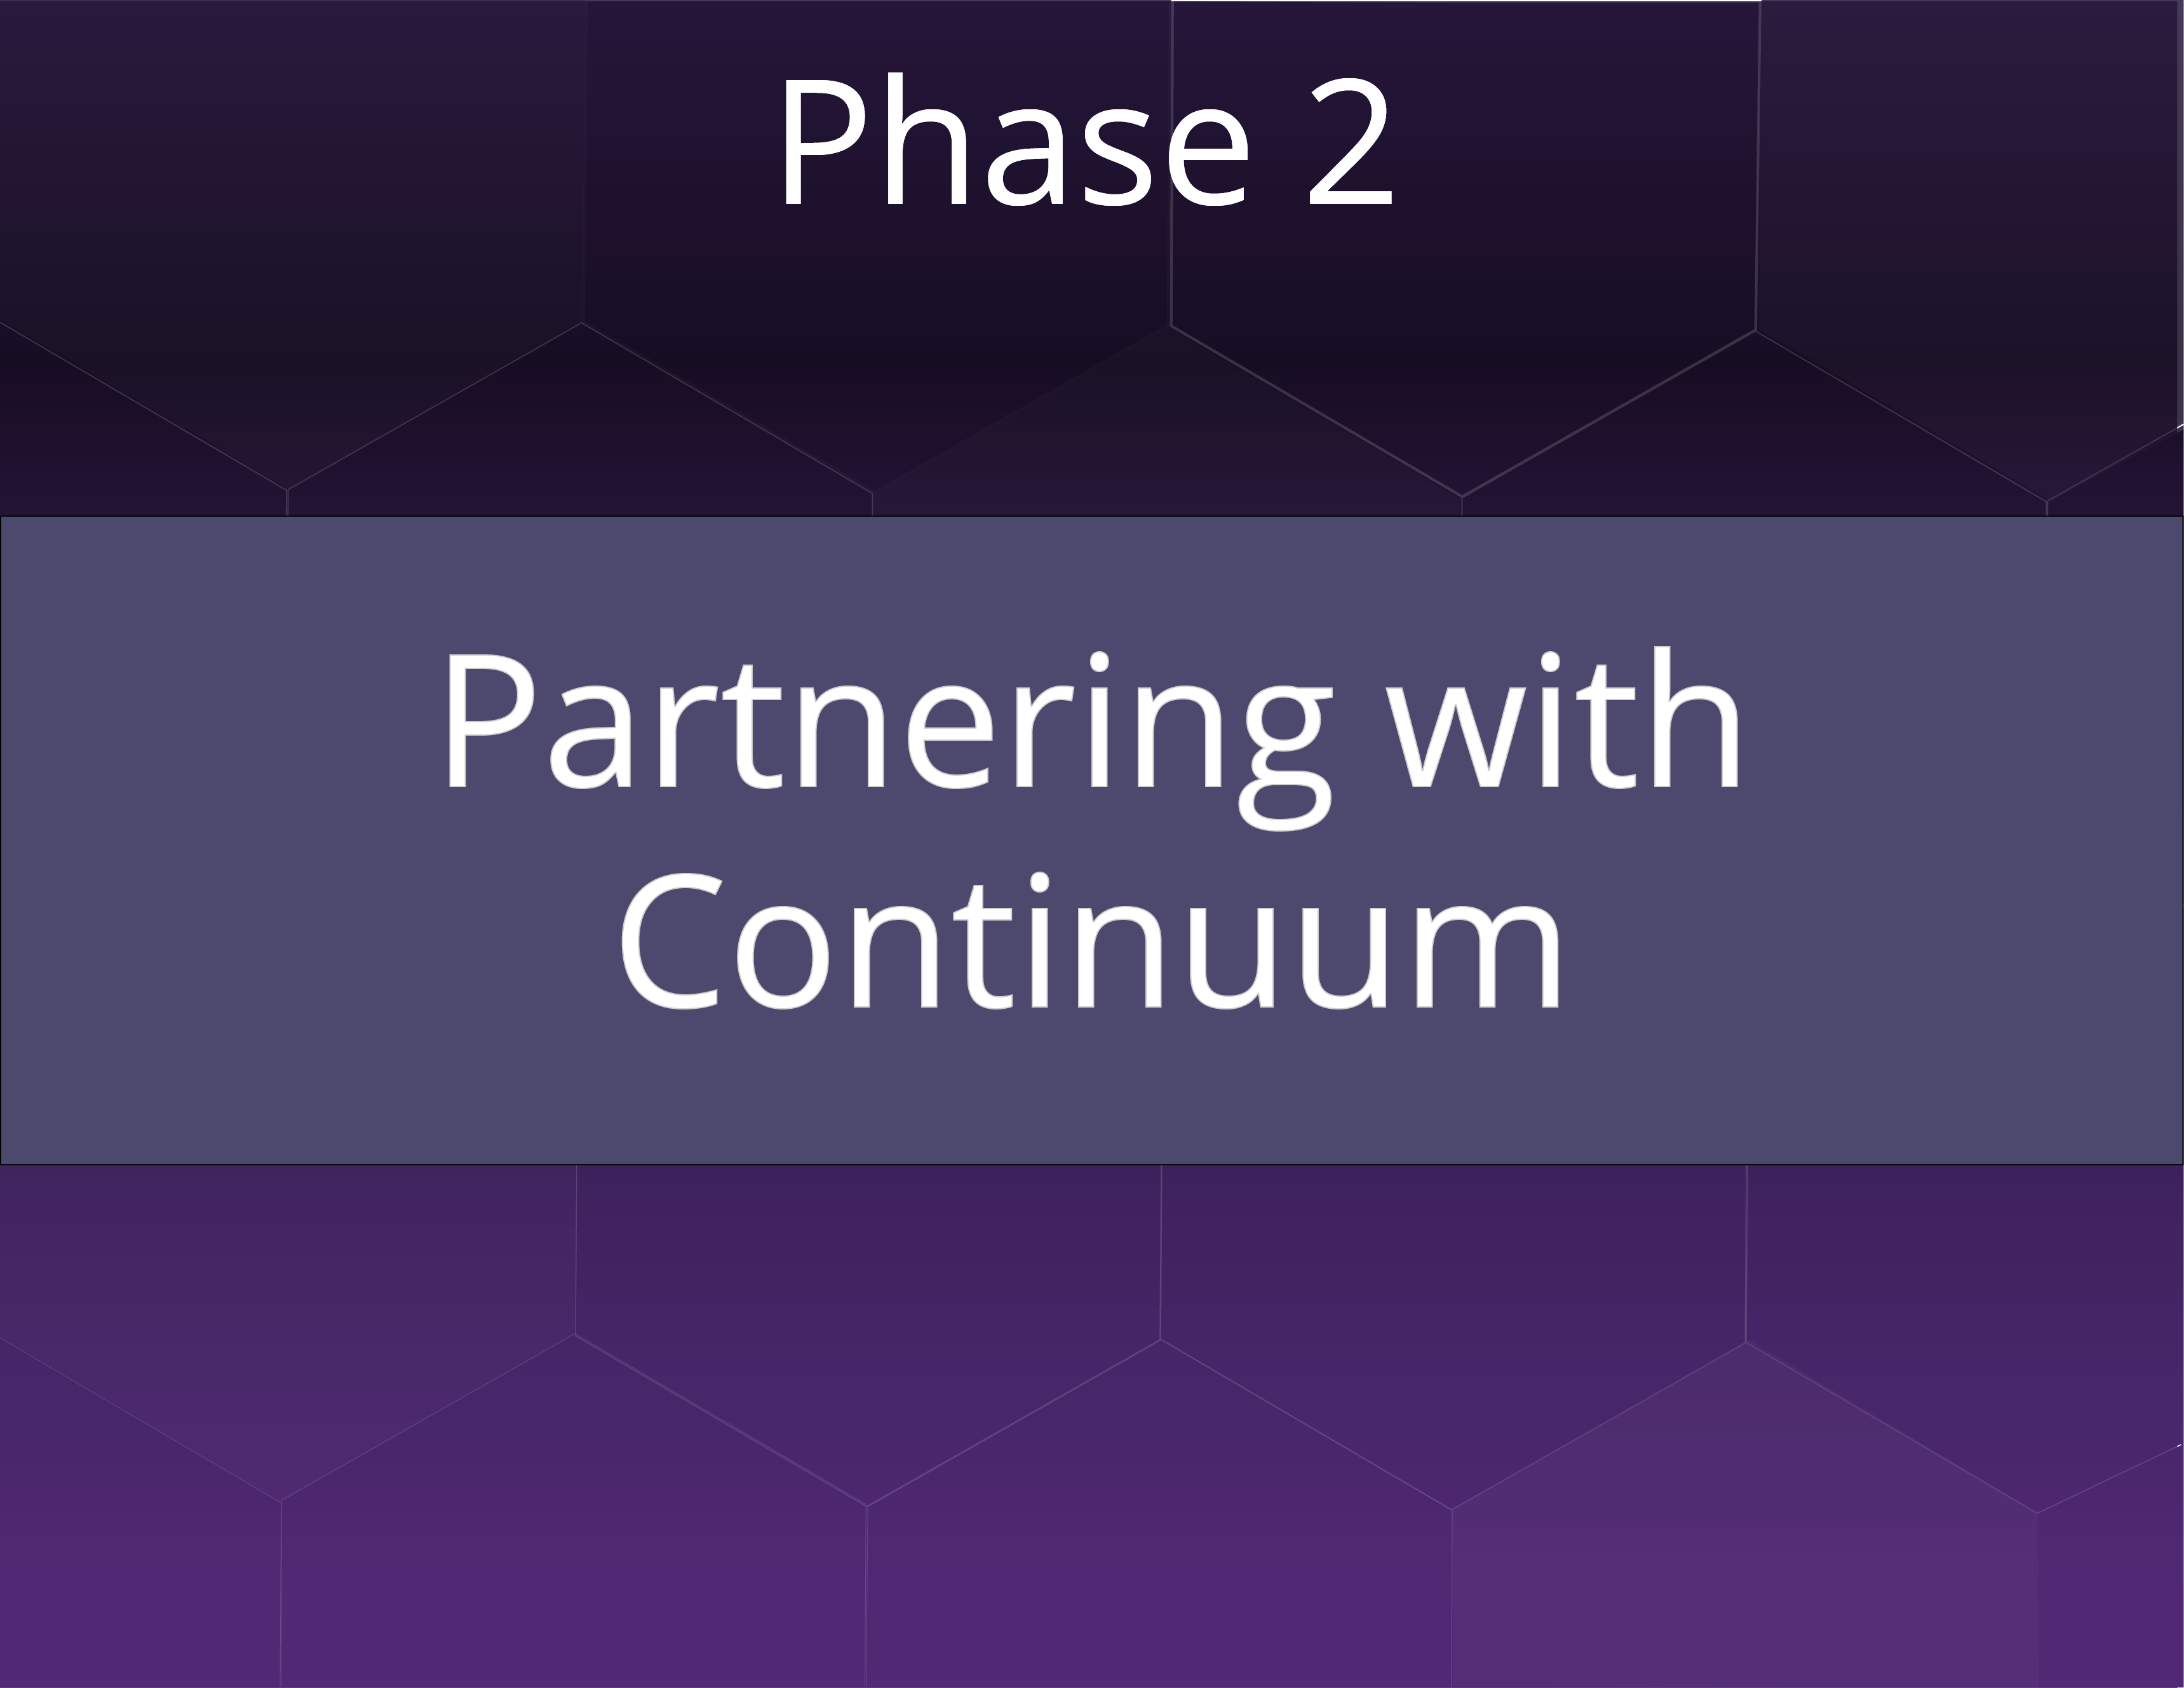 Path to Success Phase 2: Partnering with Continuum